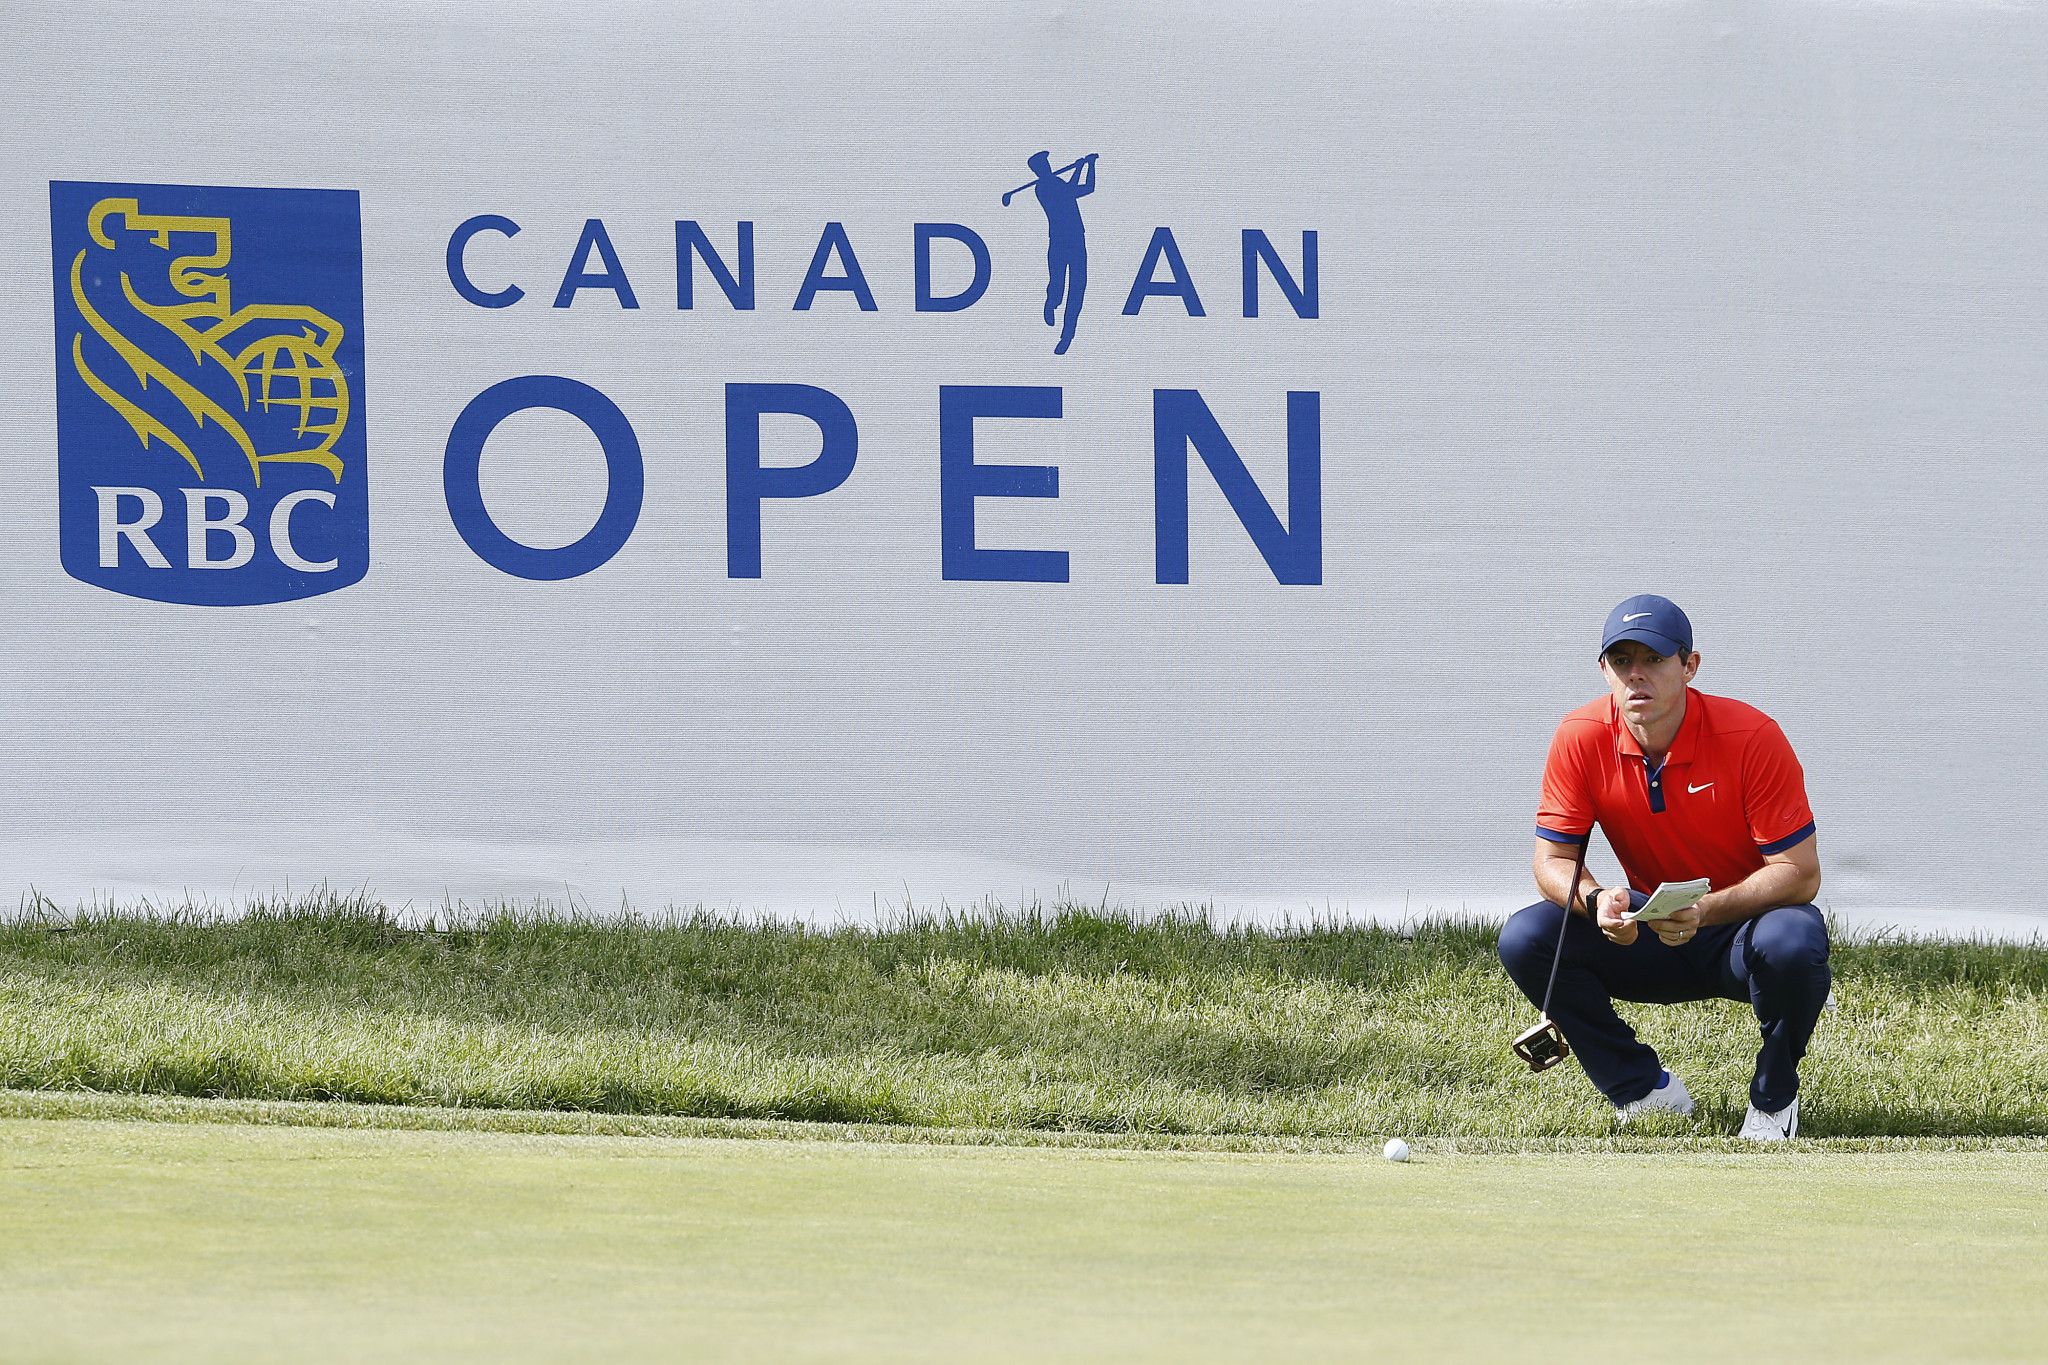 RBC Canadian Open cancelled for second consecutive year due to COVID-19